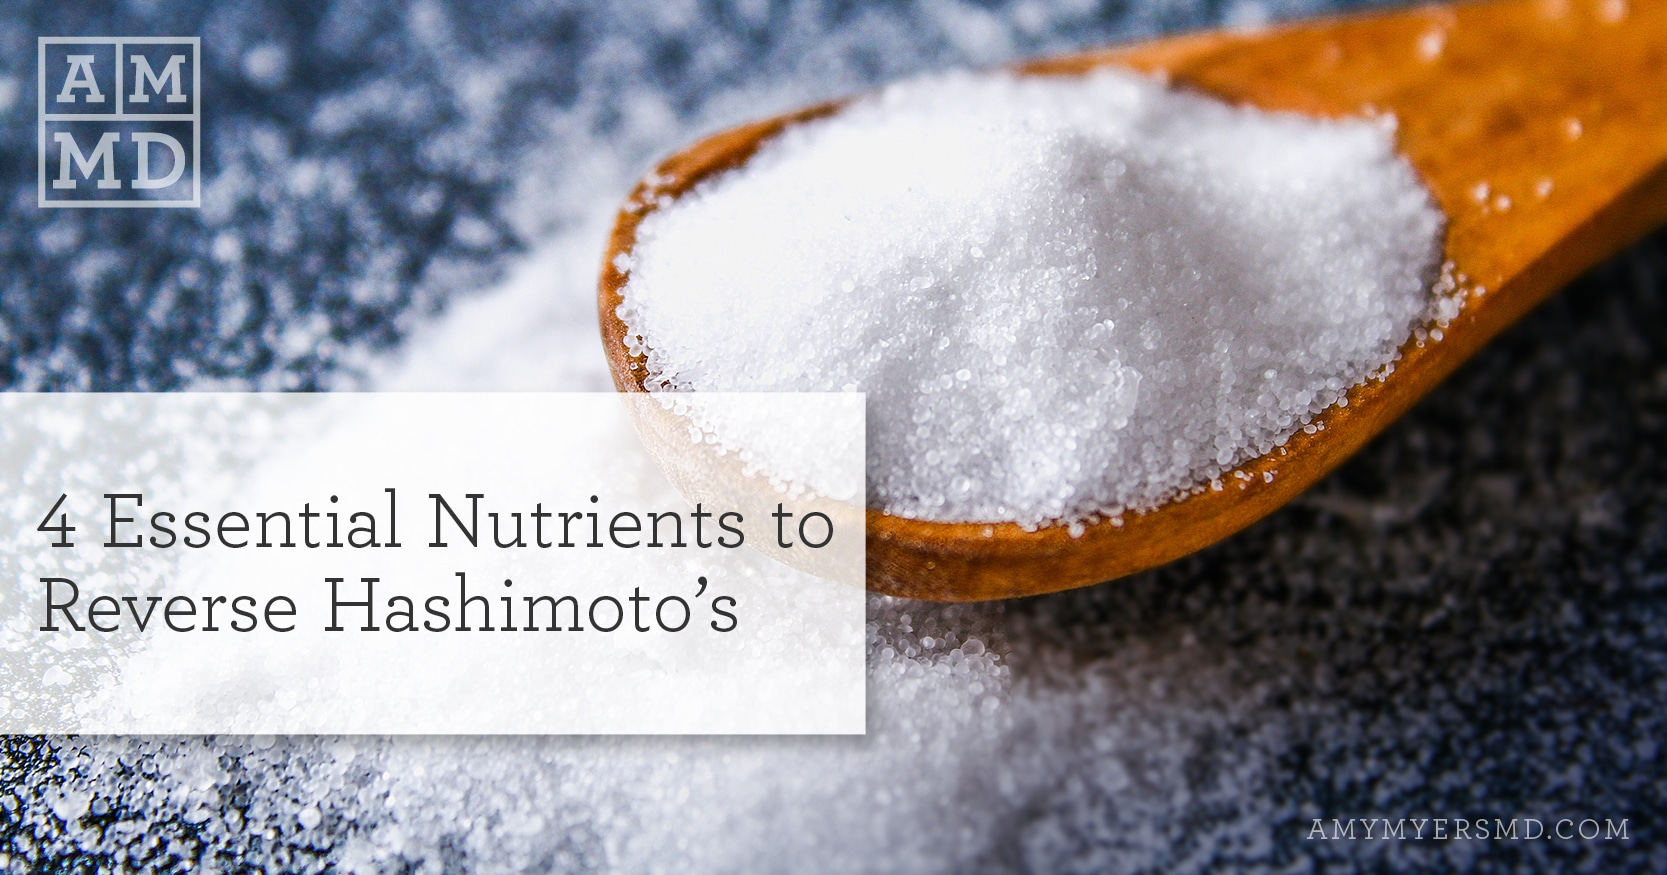 Essential Nutrients to Reverse Hashimoto's - Spoonful of Salt - Amy Myers MD